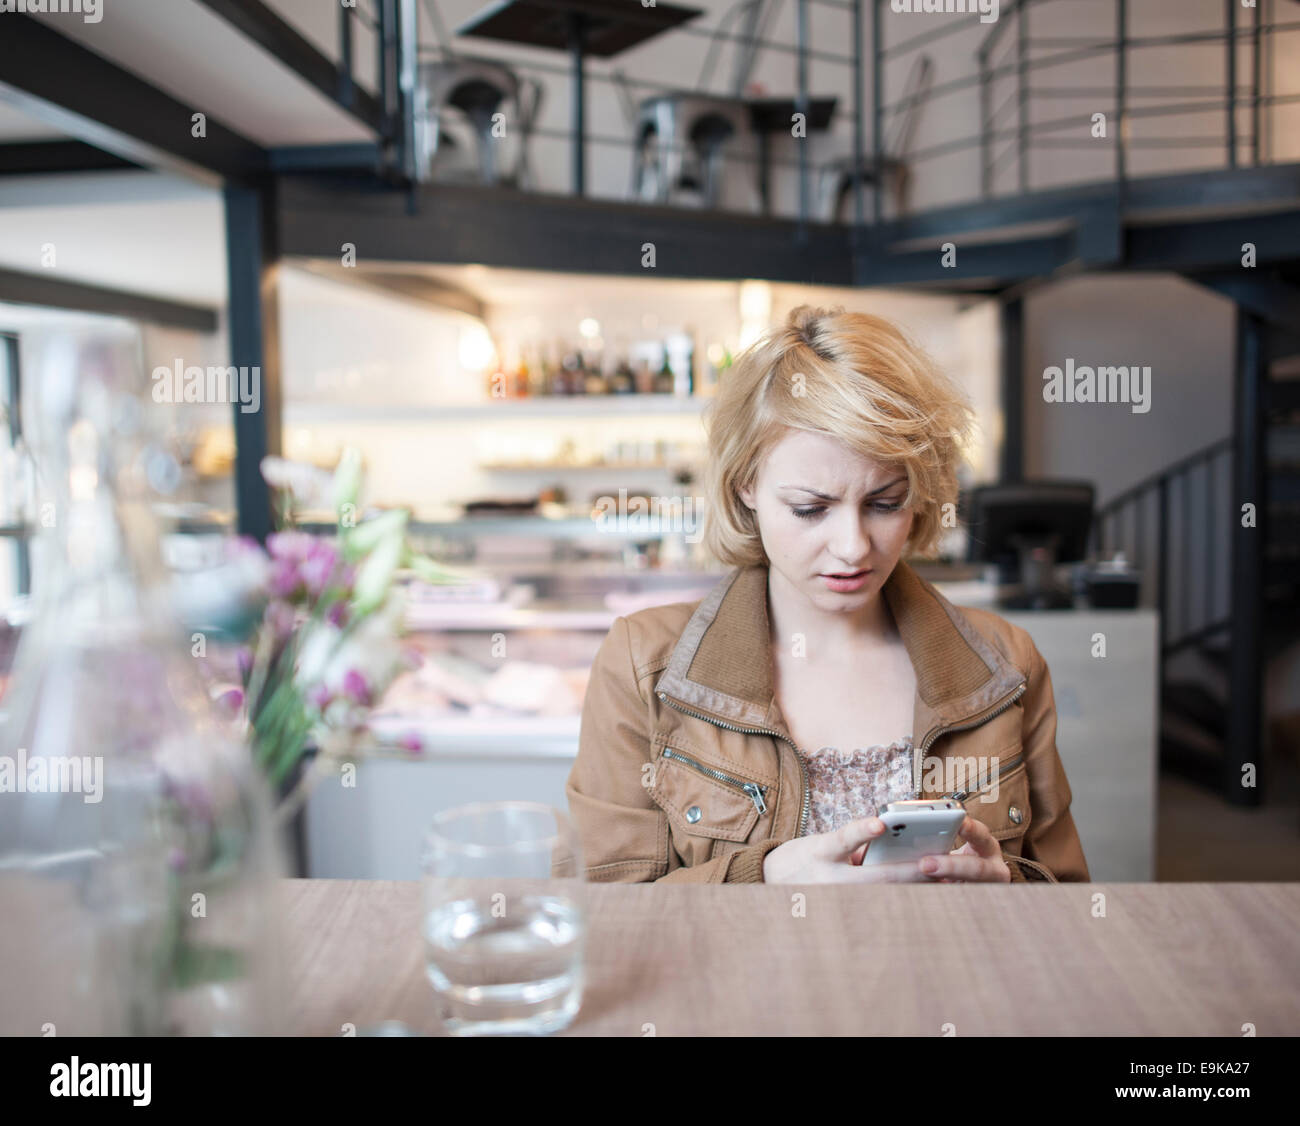 Worried young woman reading text message on cell phone in cafe - Stock Image